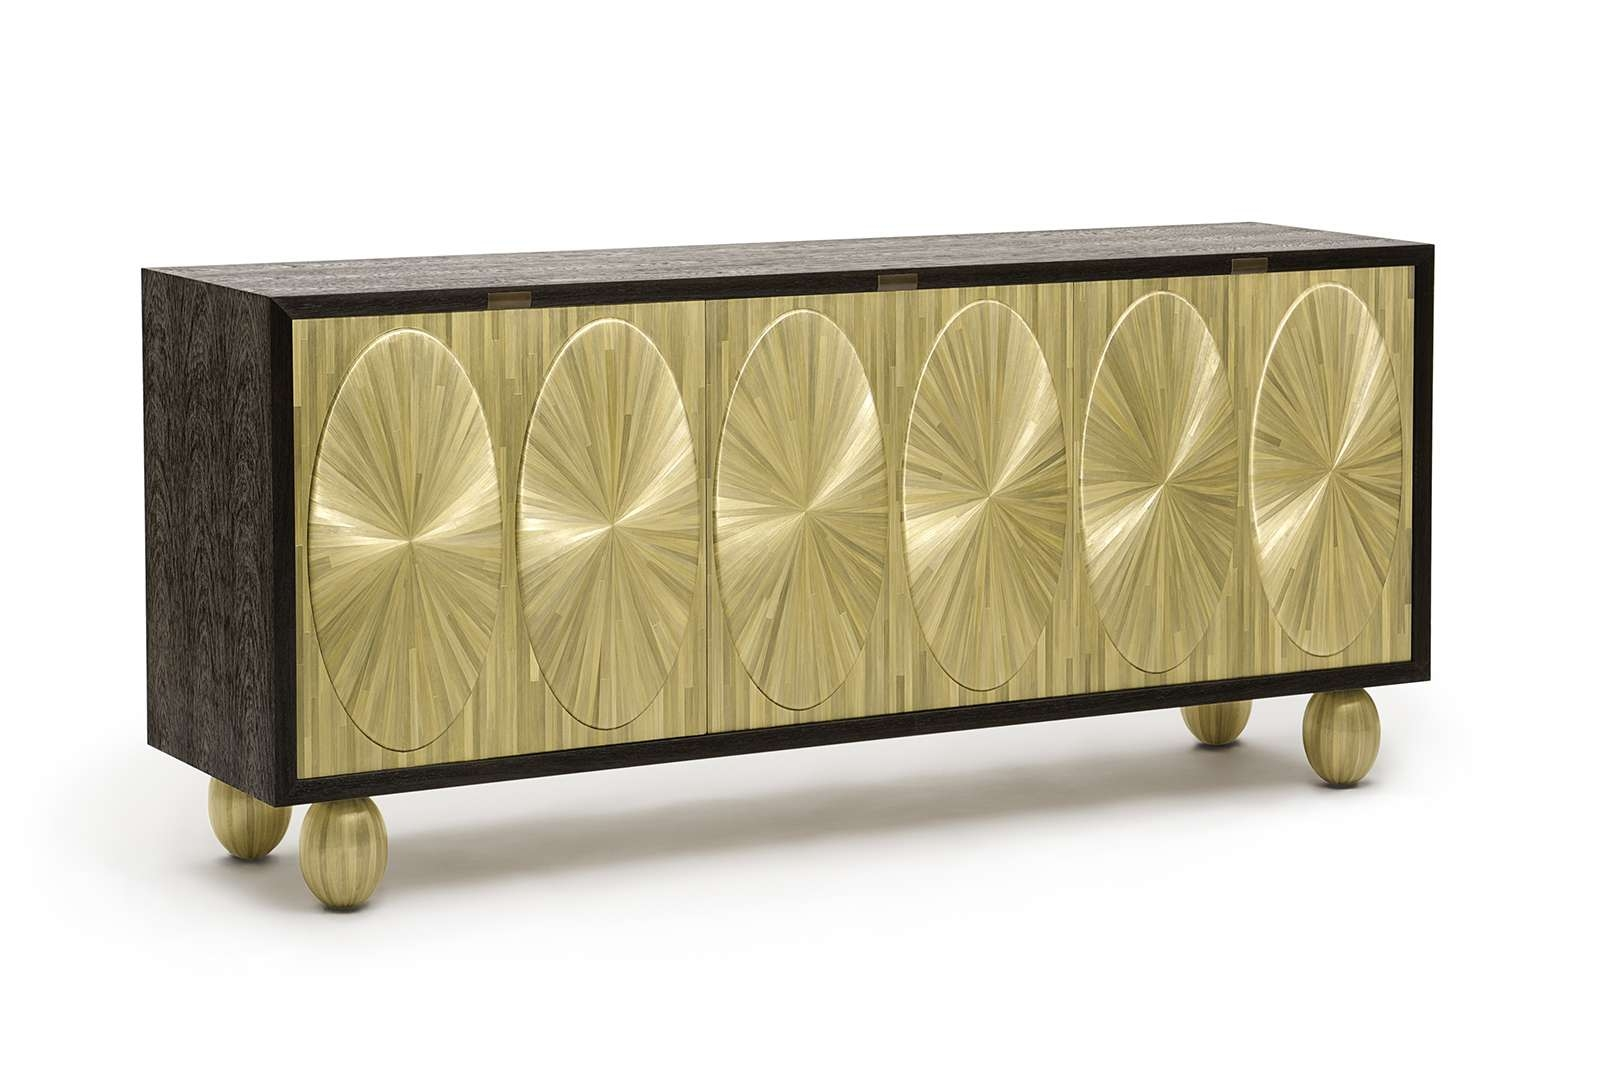 Seyssel Credenza In Straw Marquetry & Wenge   Atelier Viollet Inside Wenge Sideboards (View 11 of 20)